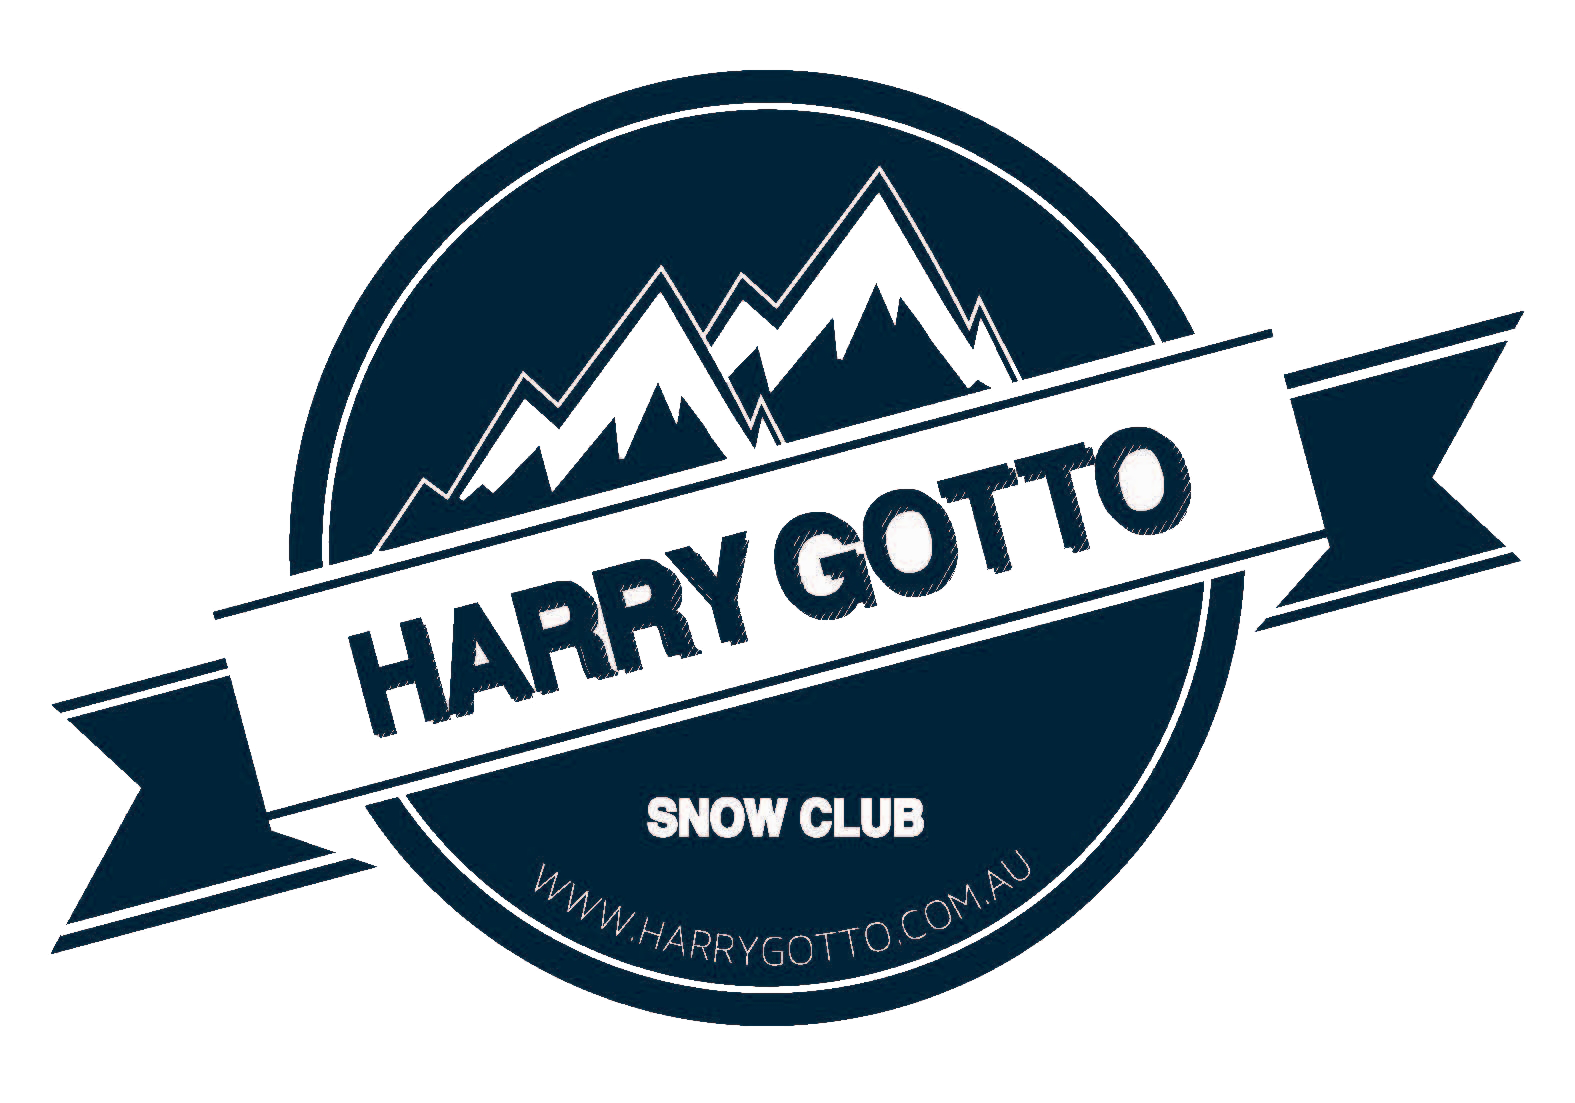 Harry Gotto Snow Club